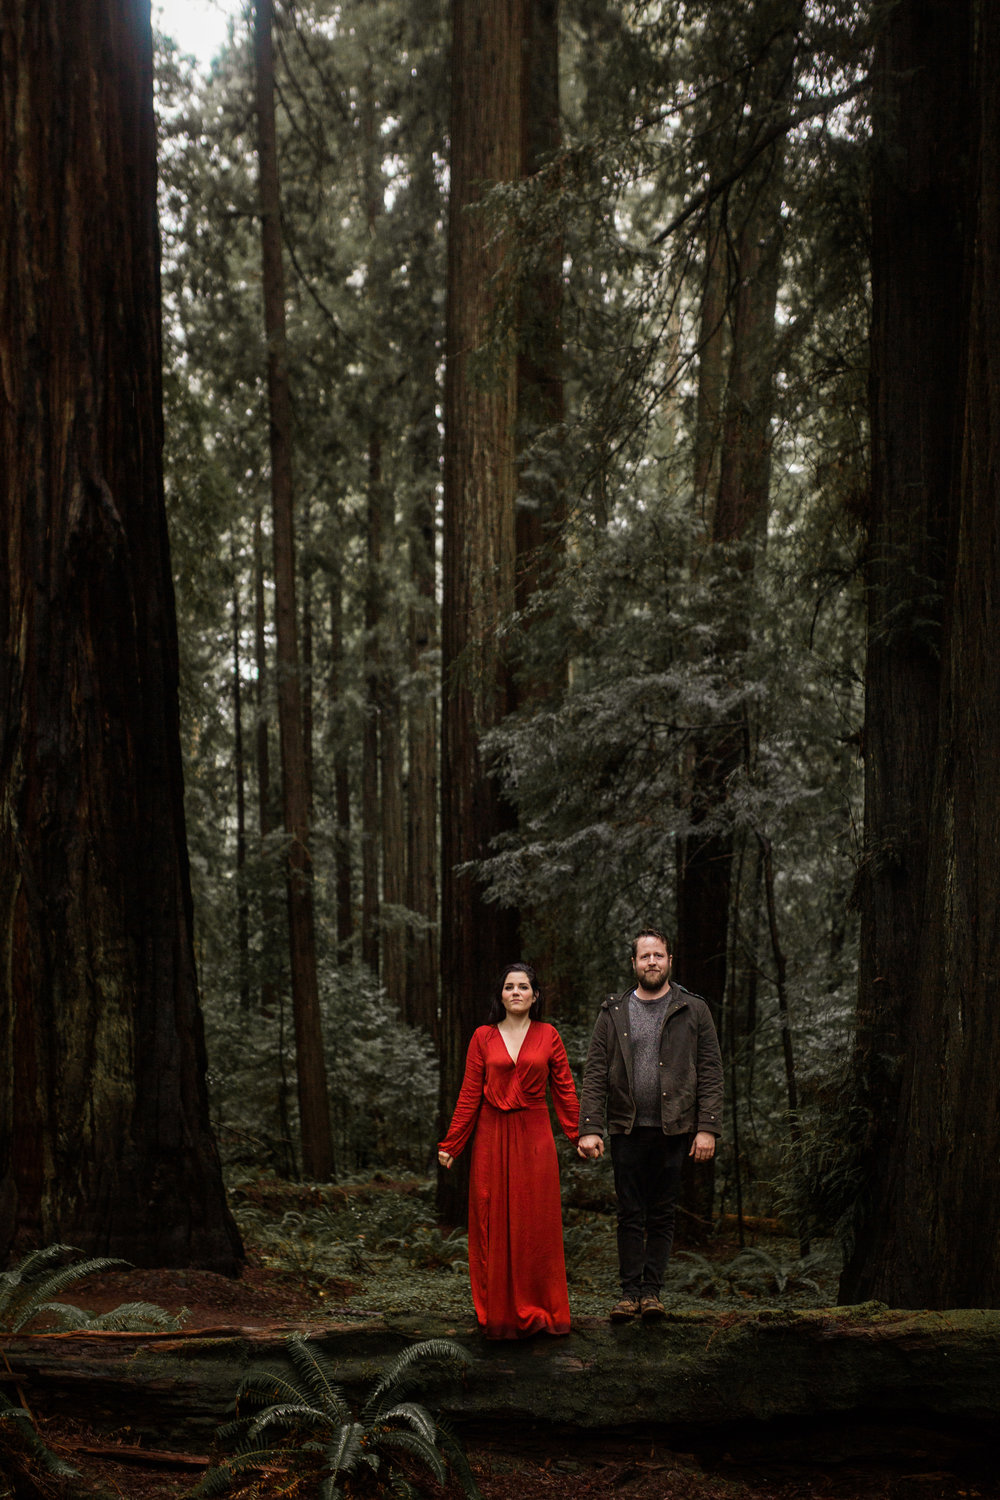 nicole-daacke-photography-redwoods-national-park-forest-rainy-foggy-adventure-engagement-session-humboldt-county-old-growth-redwood-tree-elopement-intimate-wedding-photographer-53.jpg